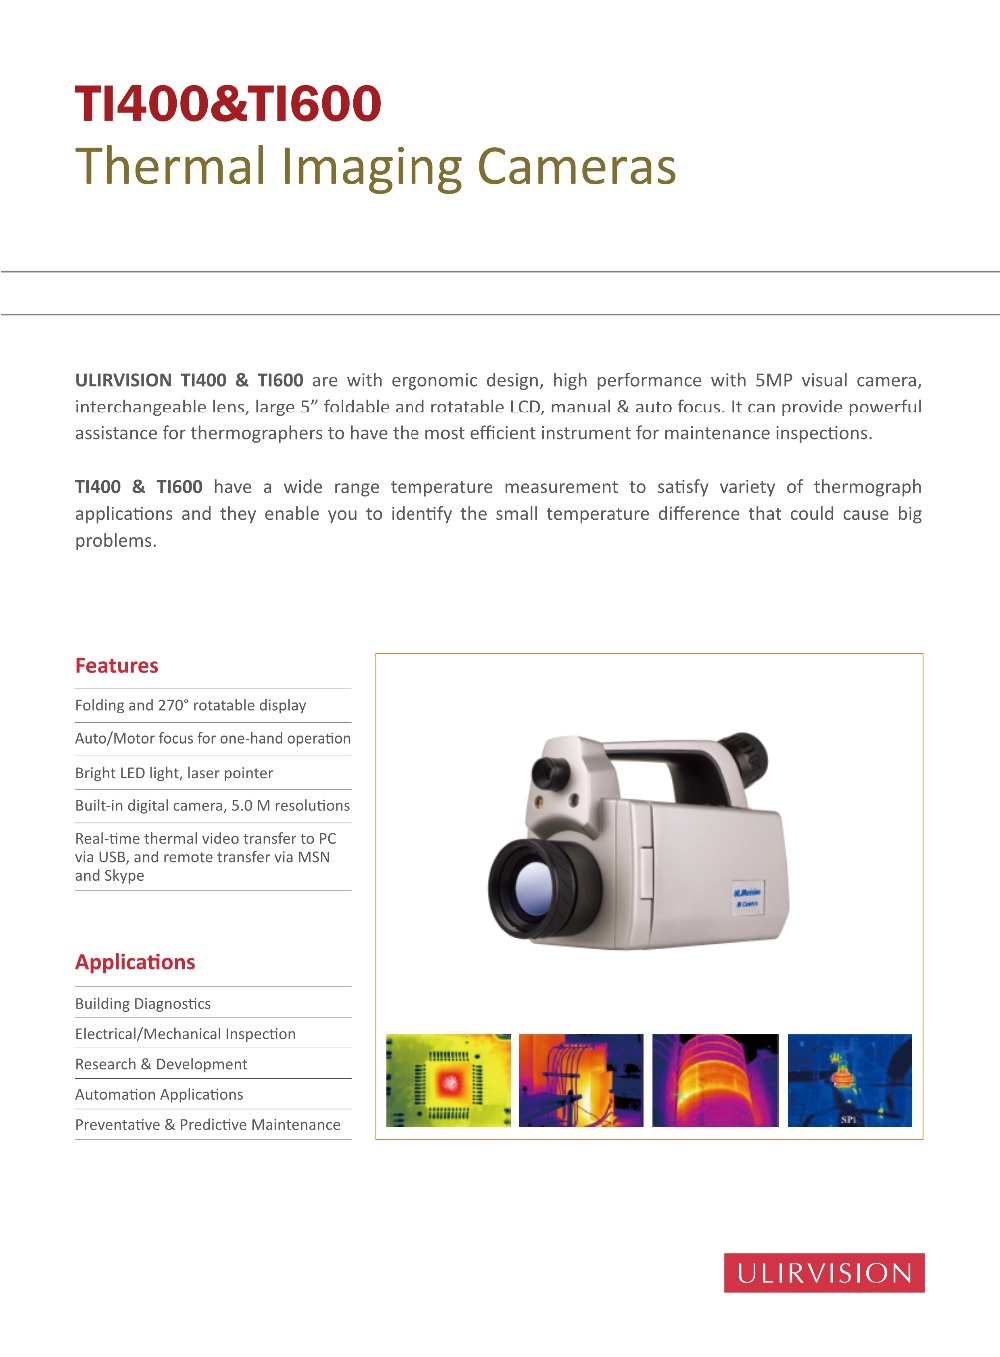 Thermal Imaging Camera TI400 temperature measure